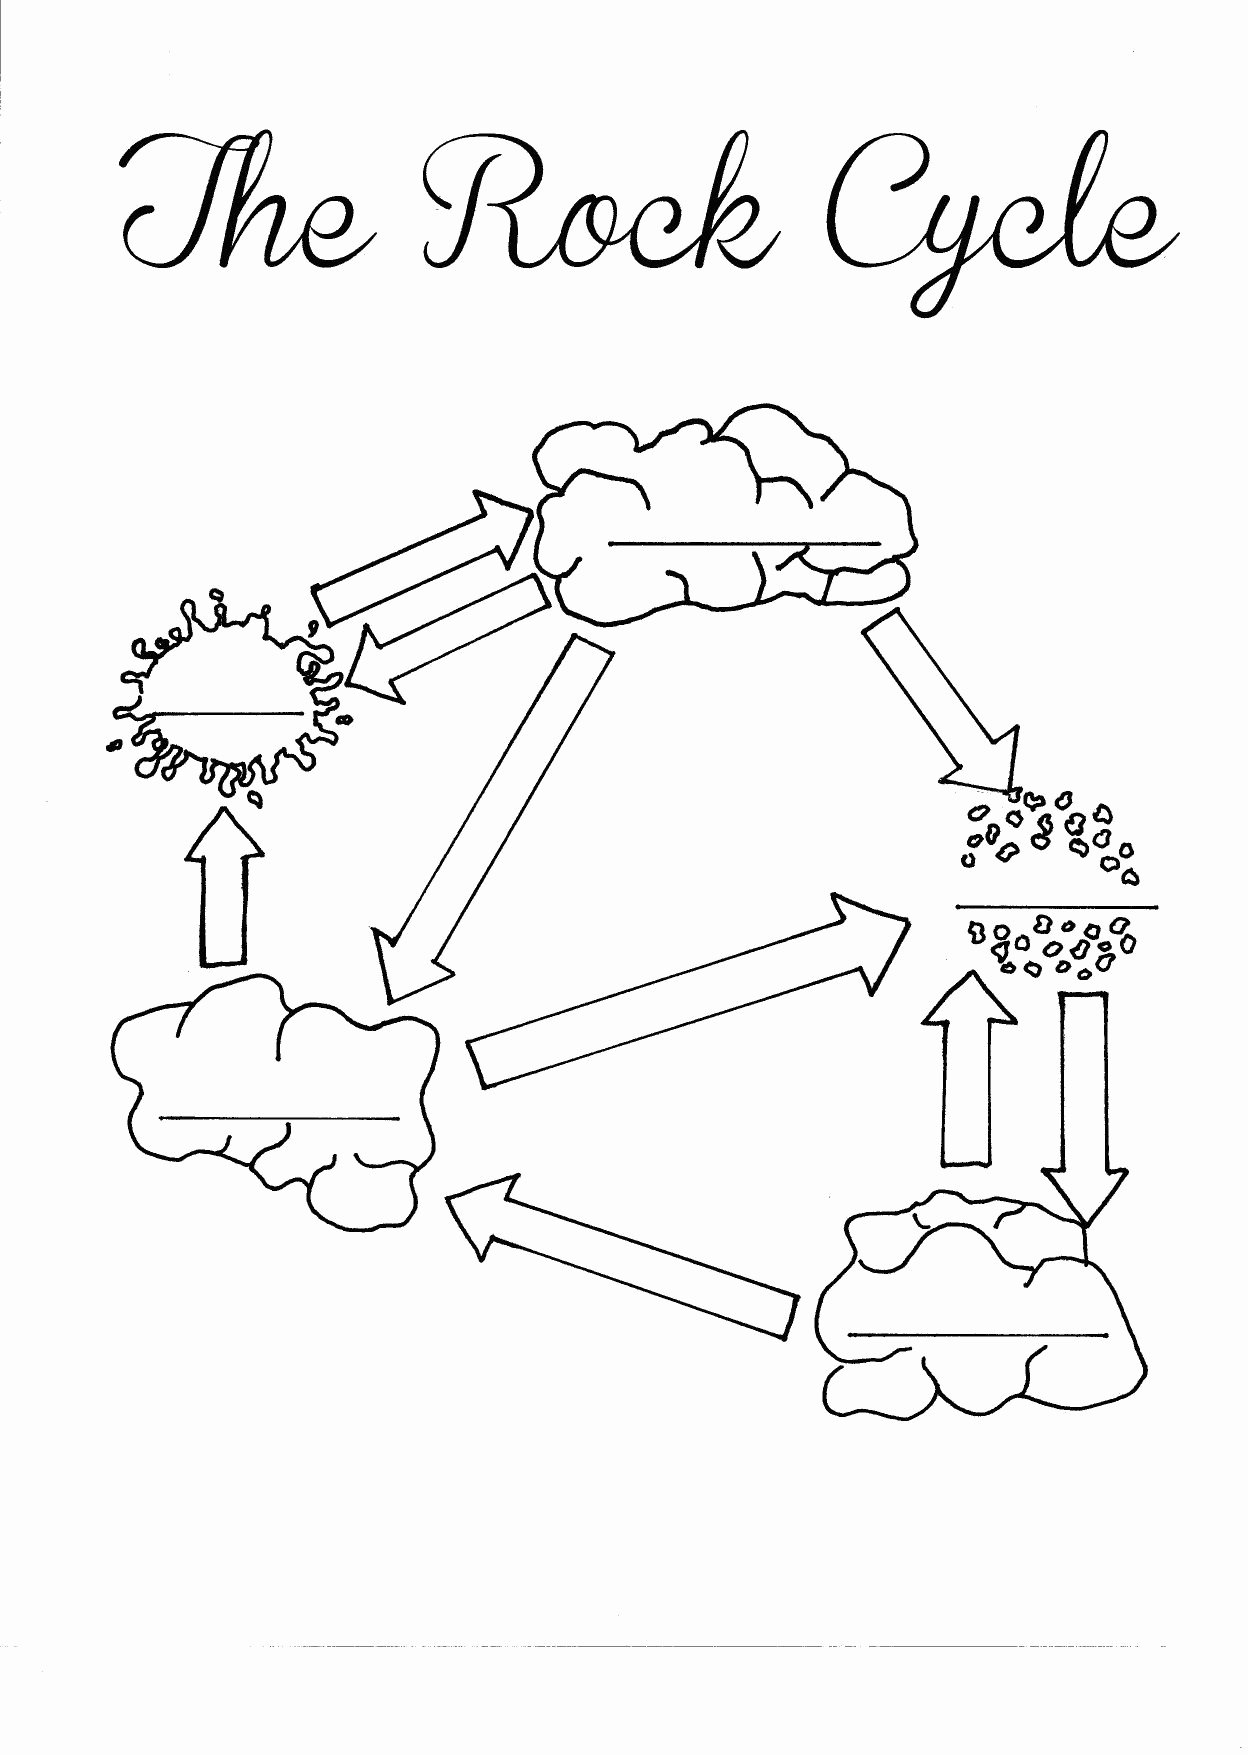 Rock Cycle Worksheet Middle School Ideas Pin by Megan Escobar Olsen On Teaching Middle School